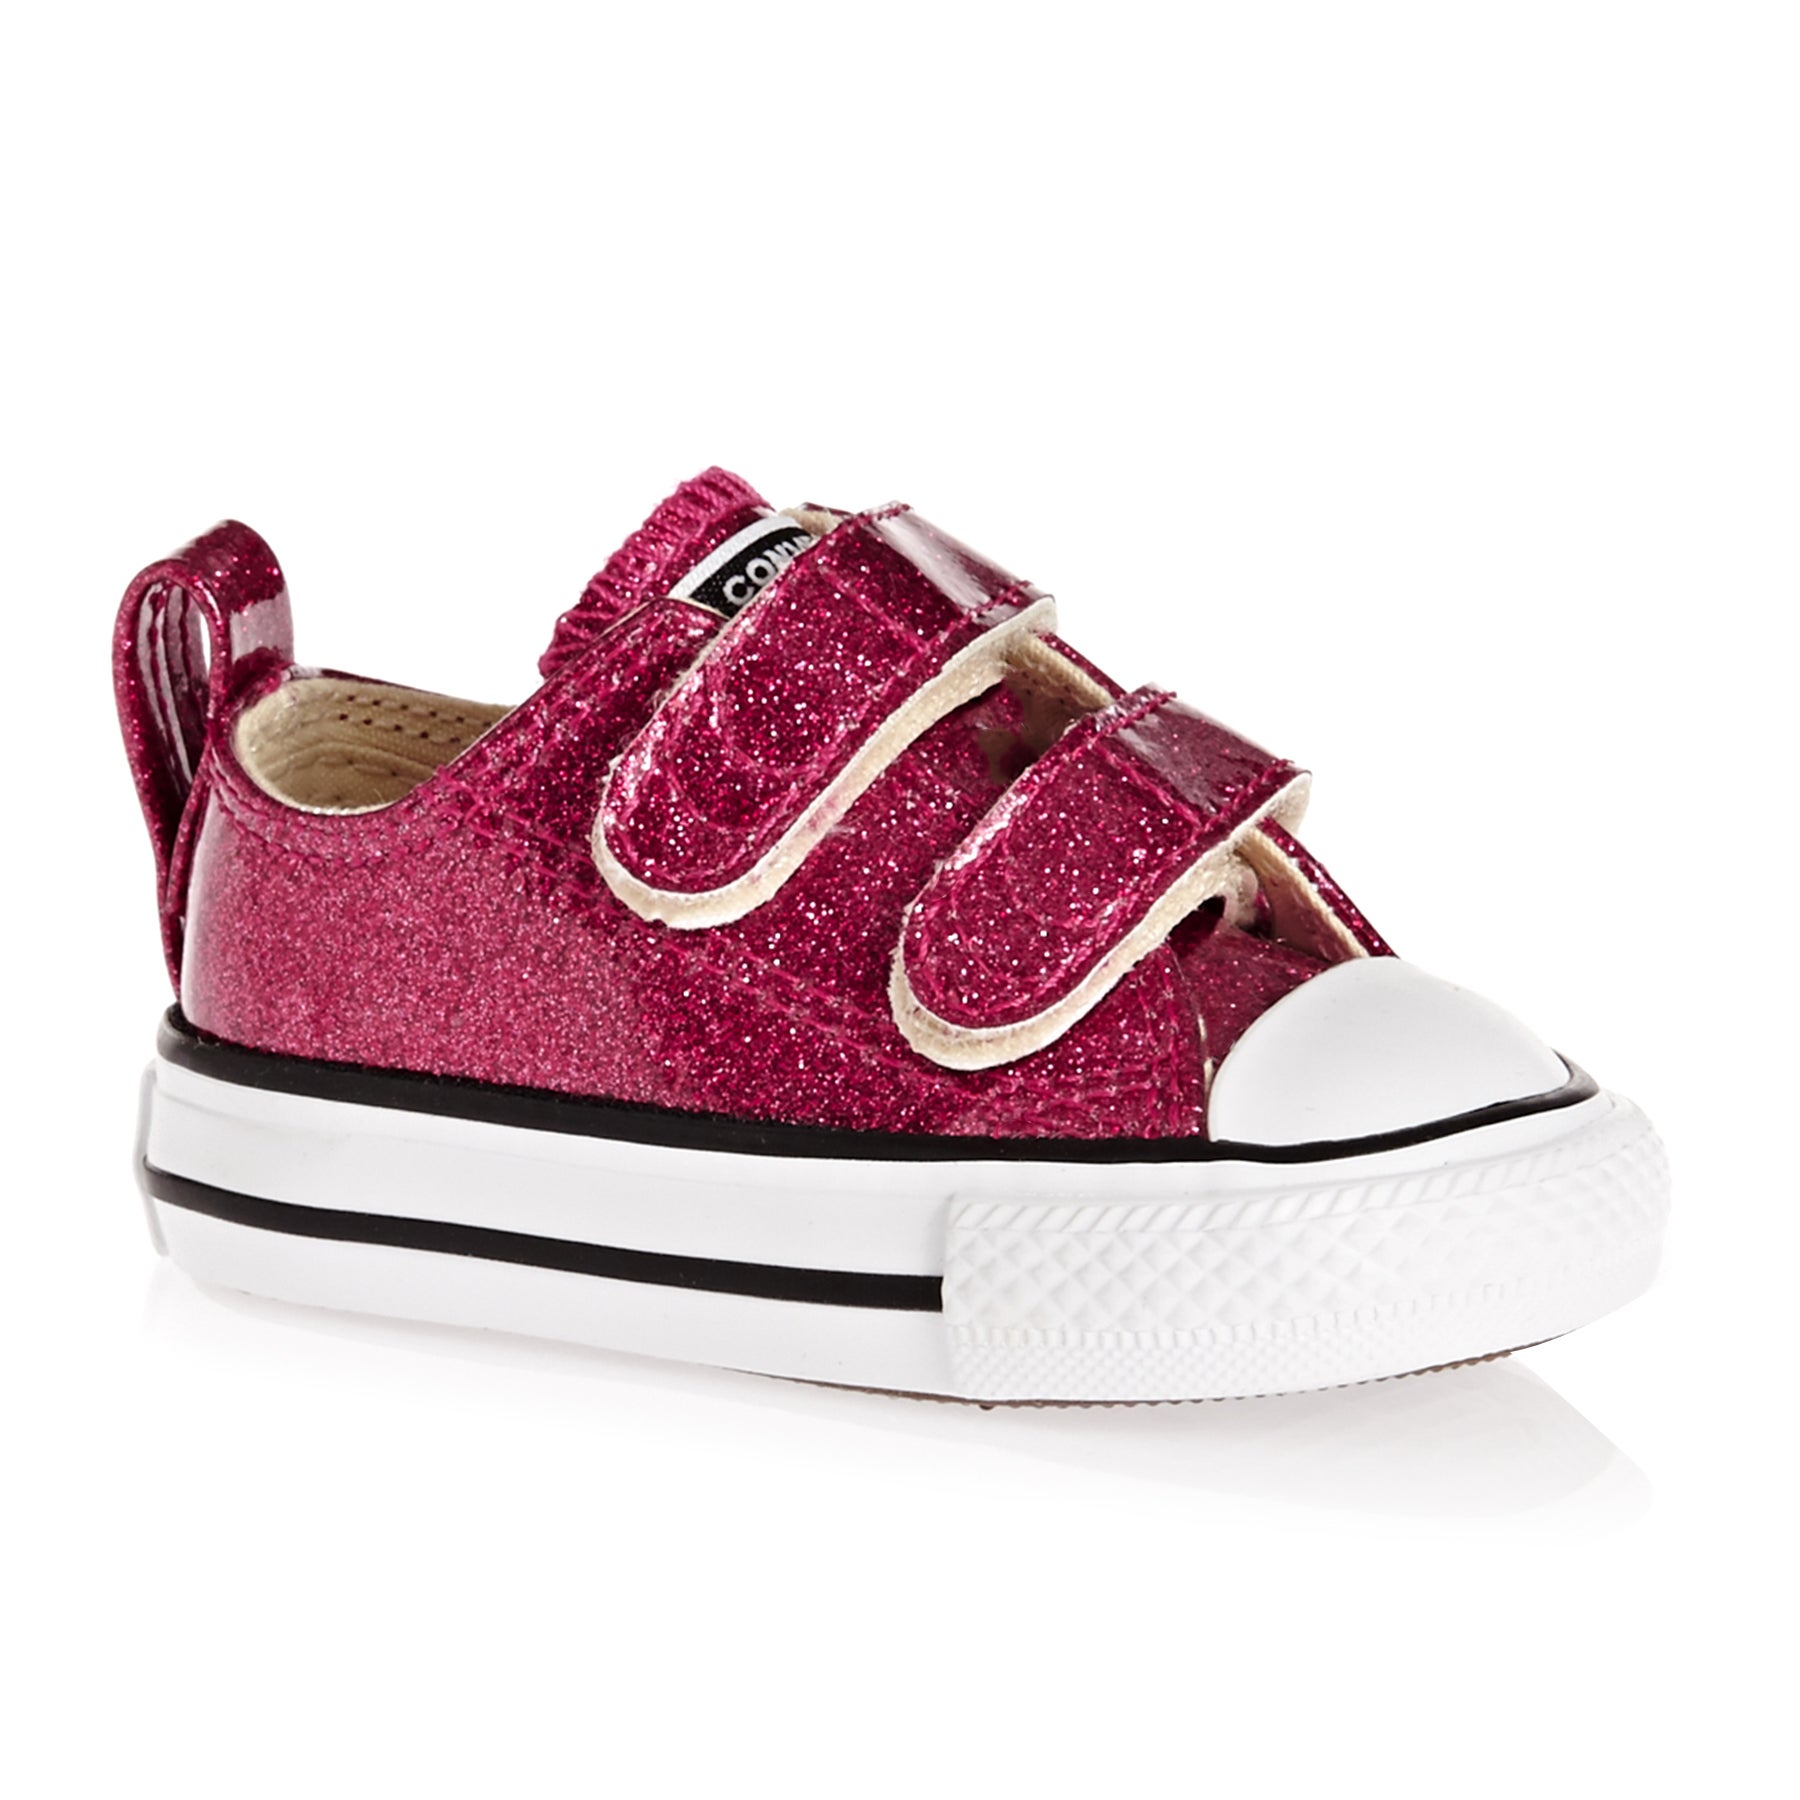 TrainersMens Womens ShoesClothingamp; Converse Surfdome Converse kOuwXTPZi